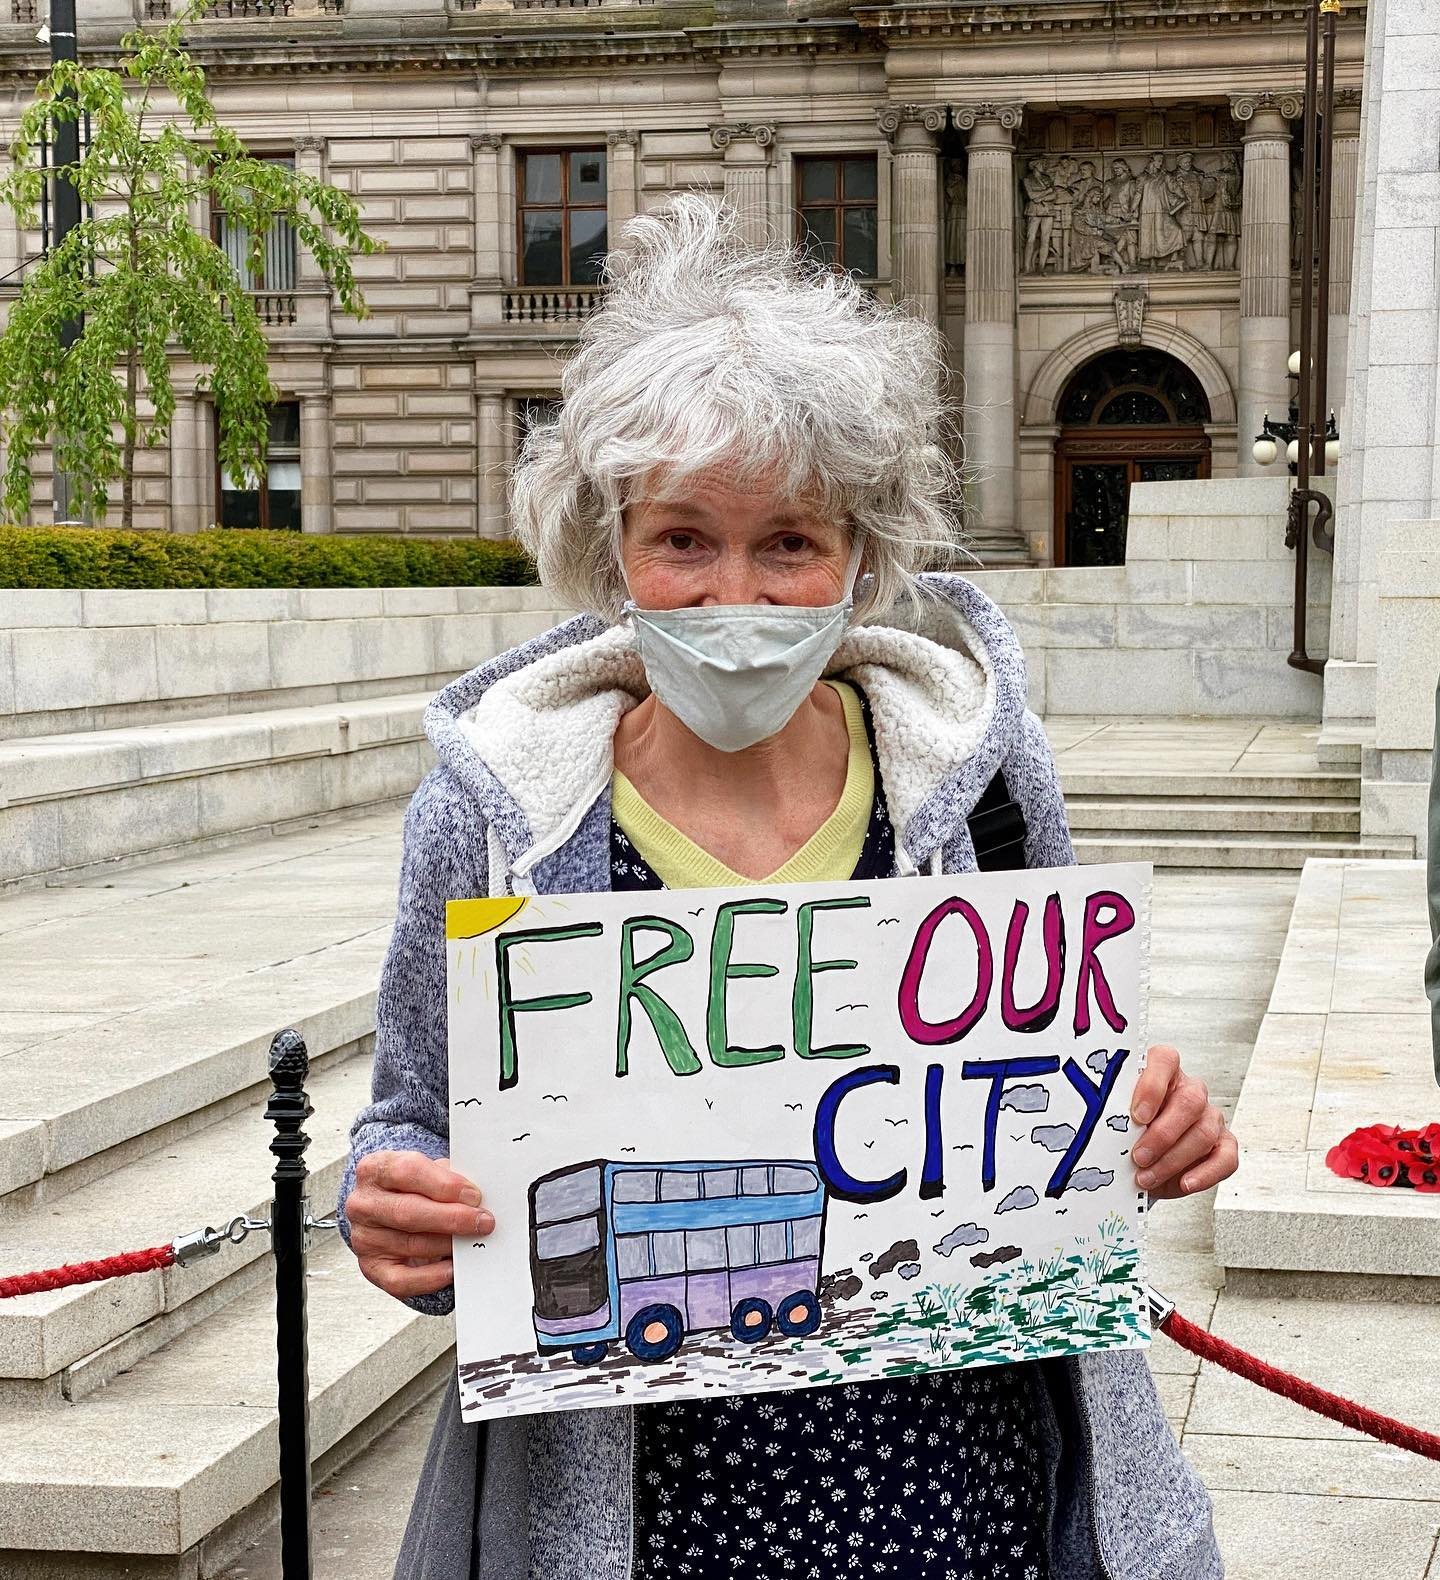 Free our city